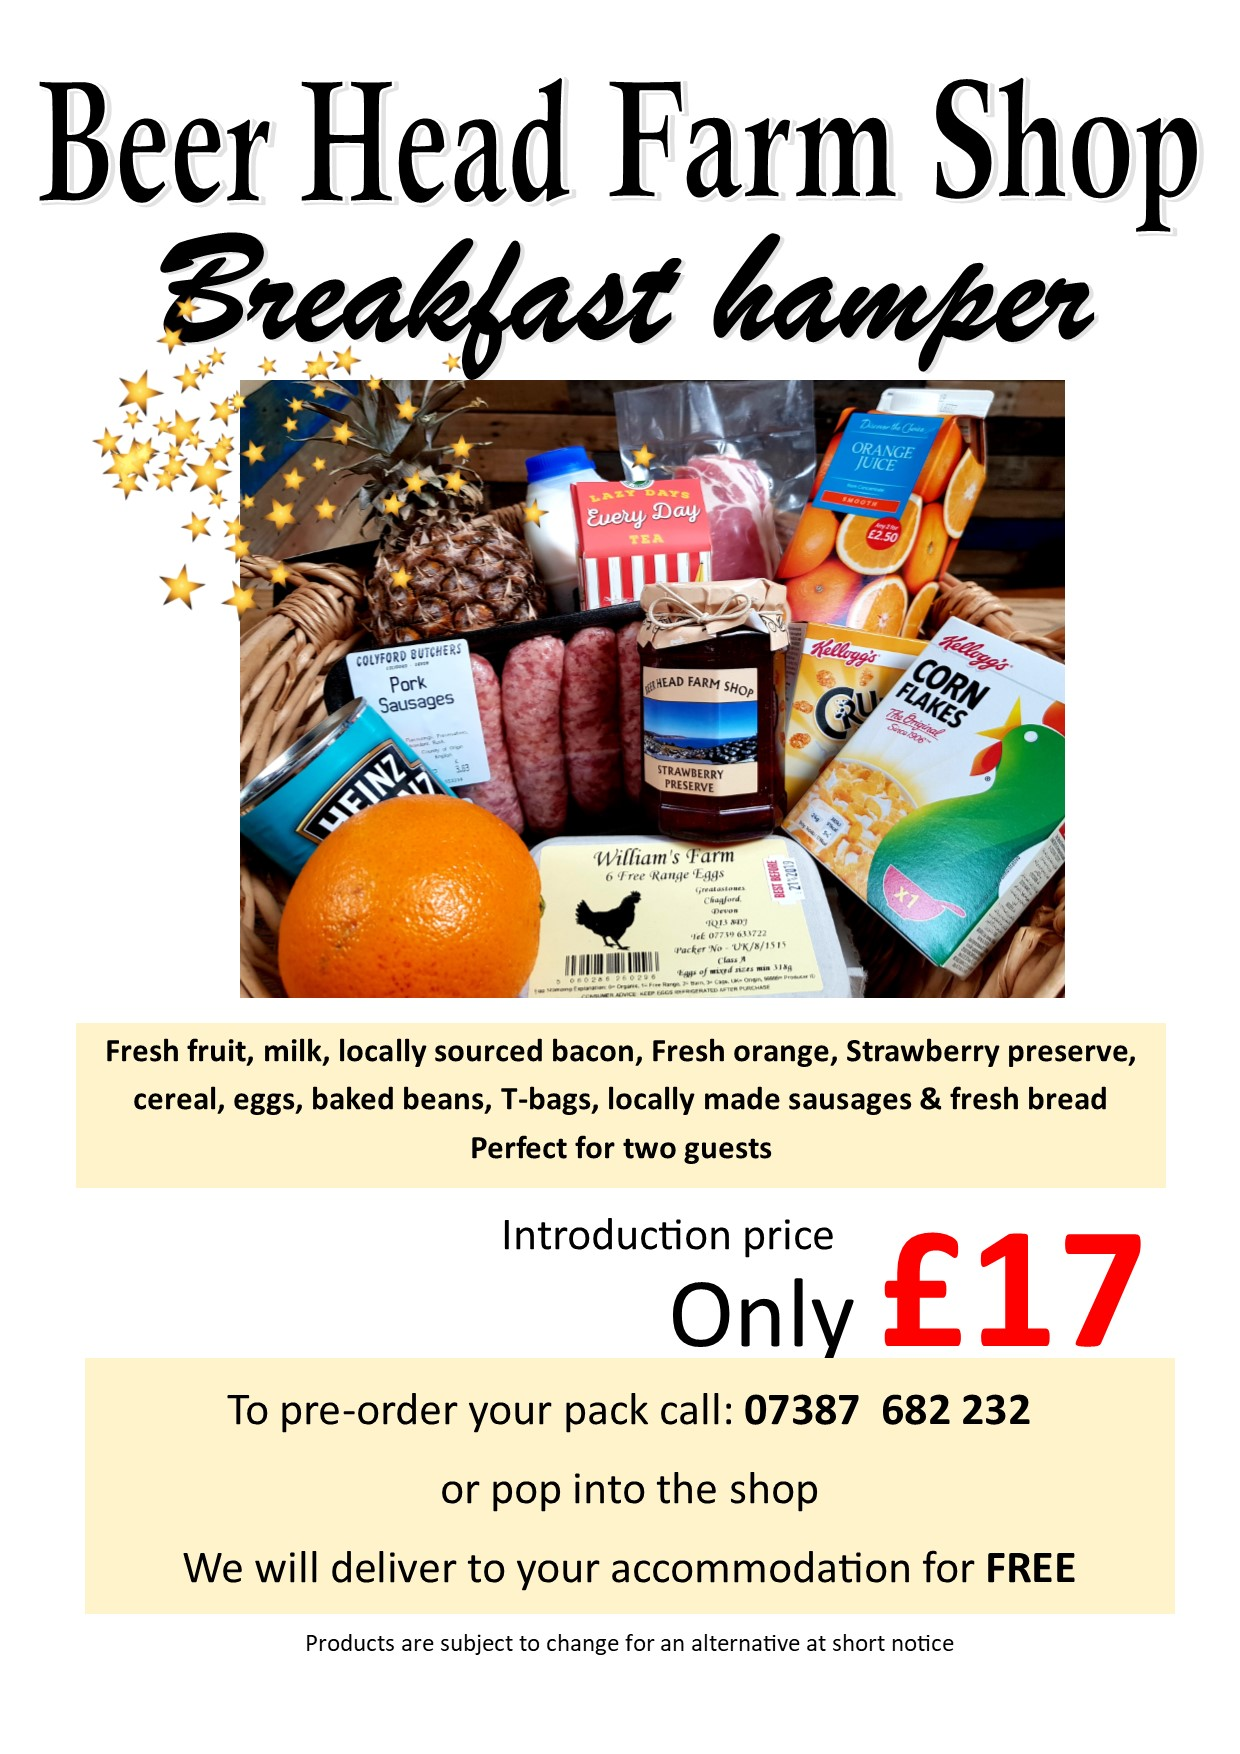 Breakfast hamper.jpg